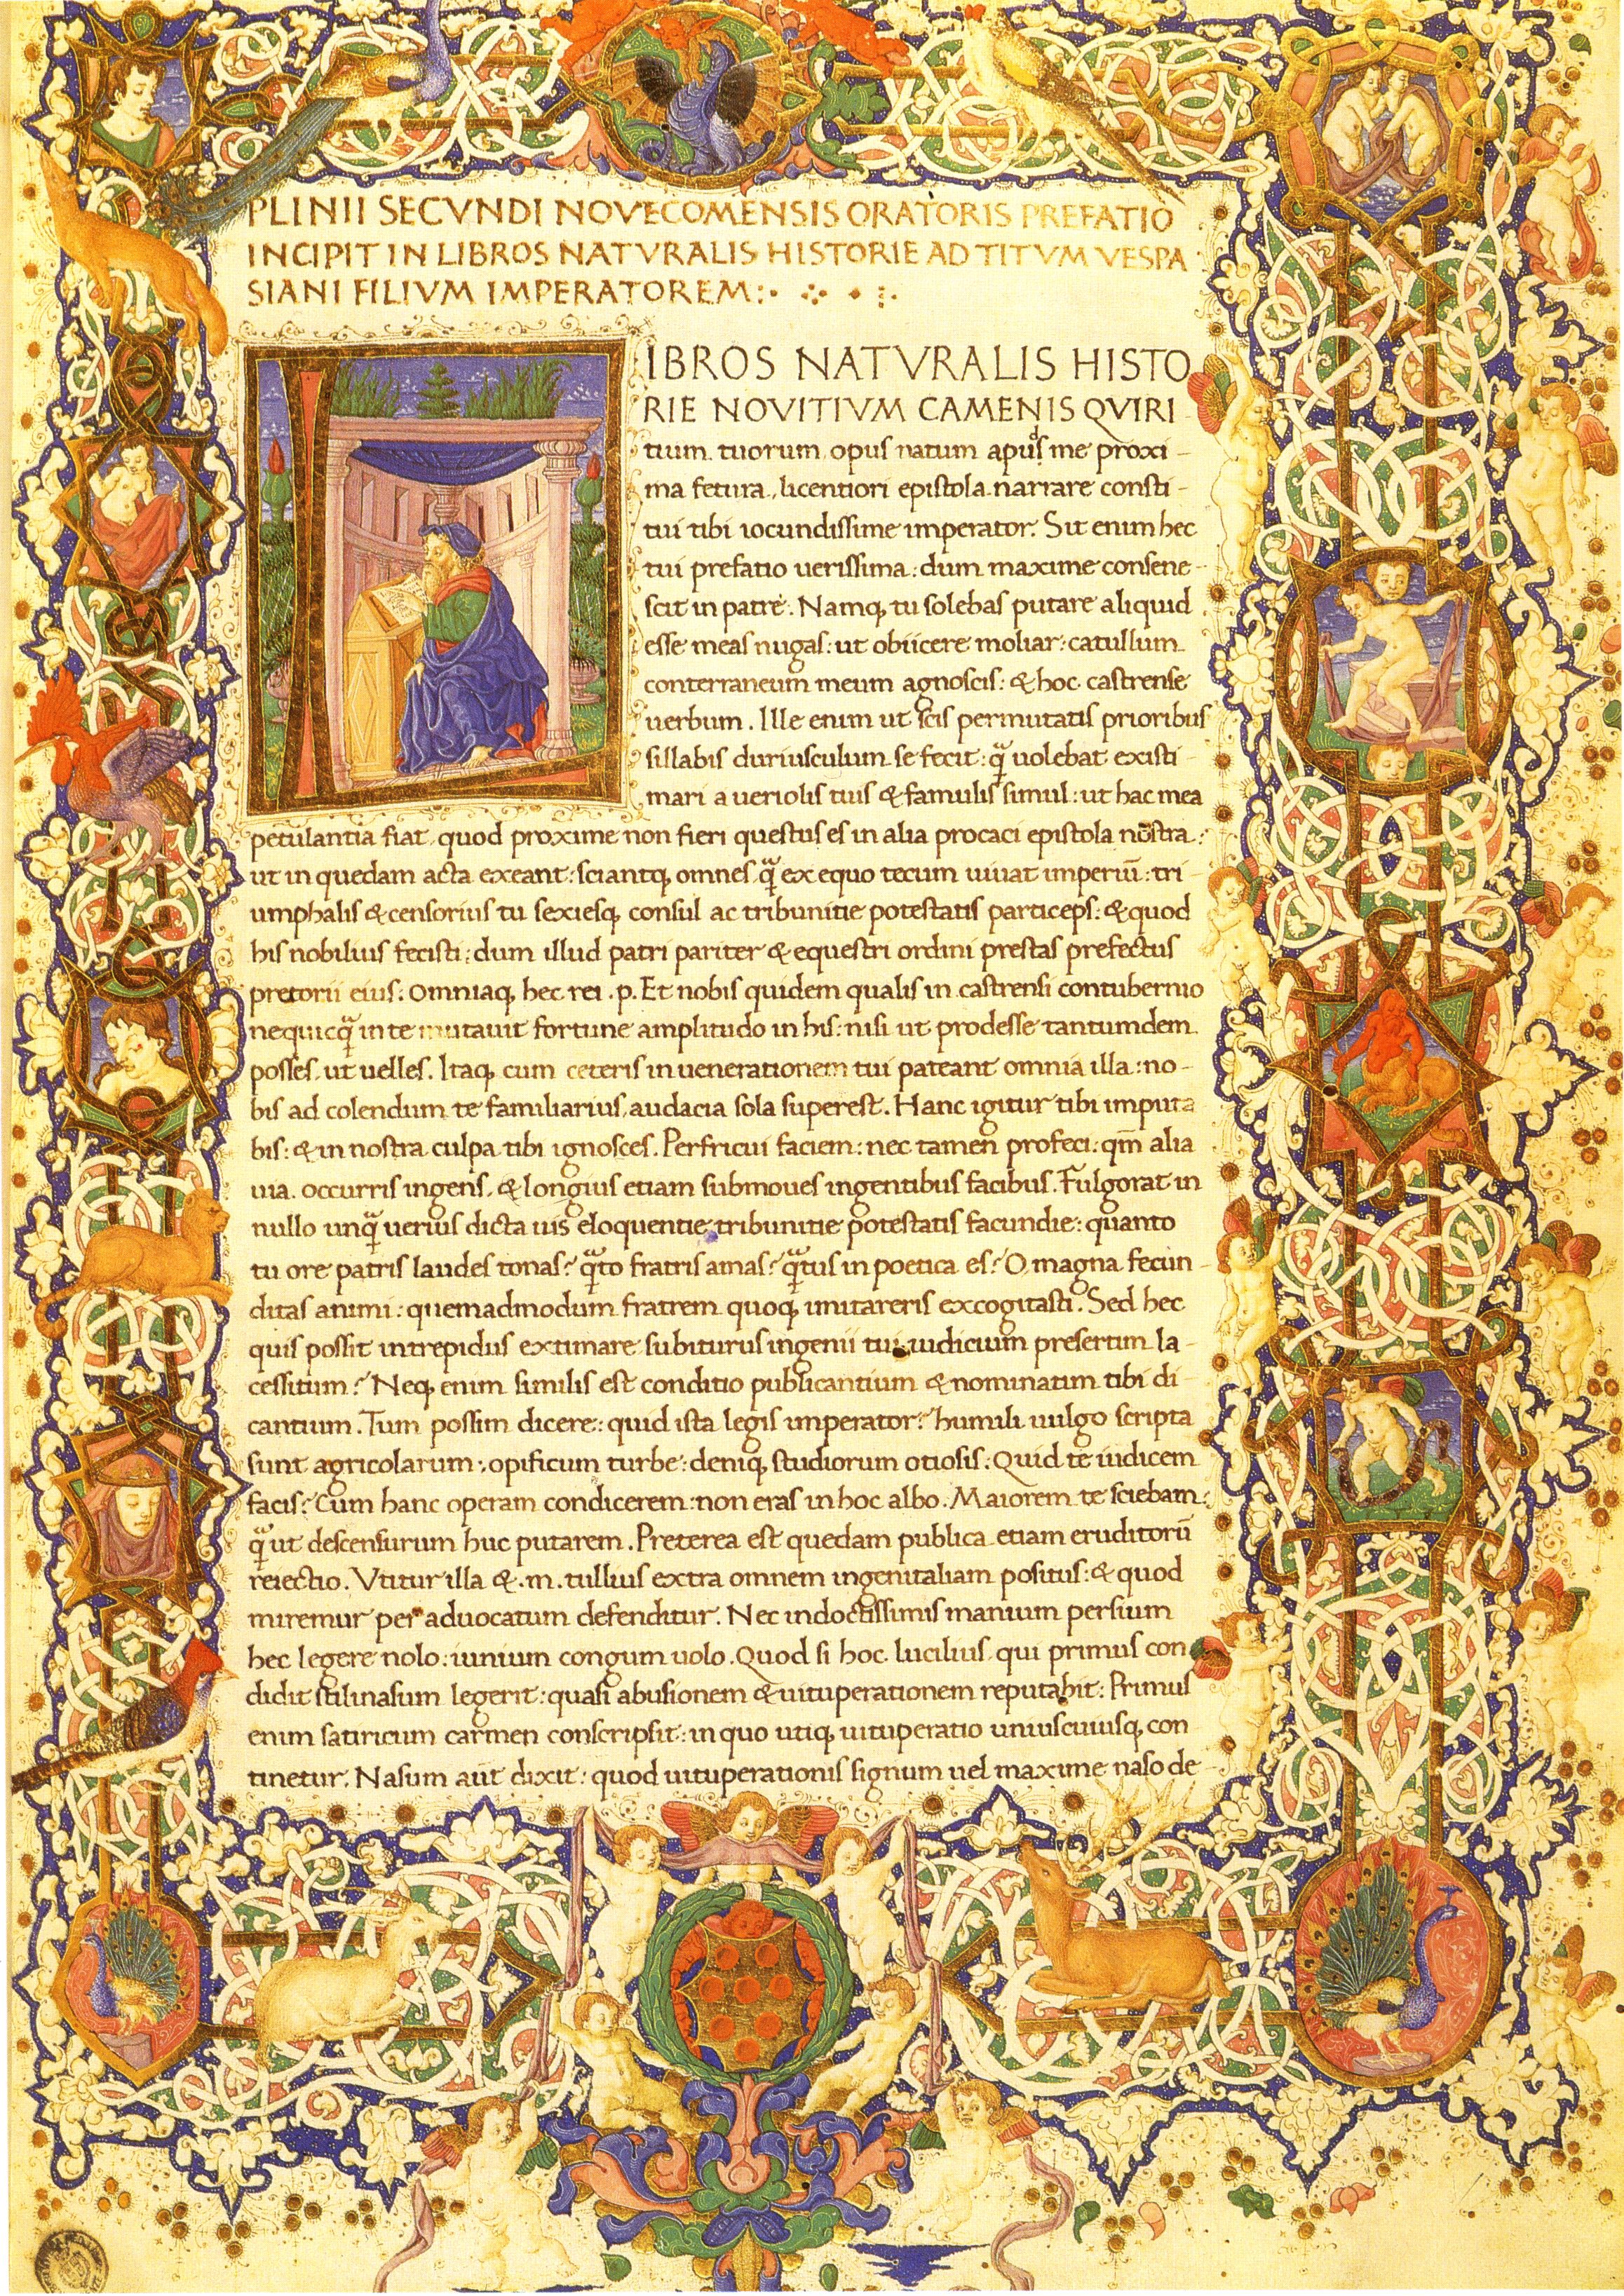 A page from  Historia naturalis  by Pliny the Elder